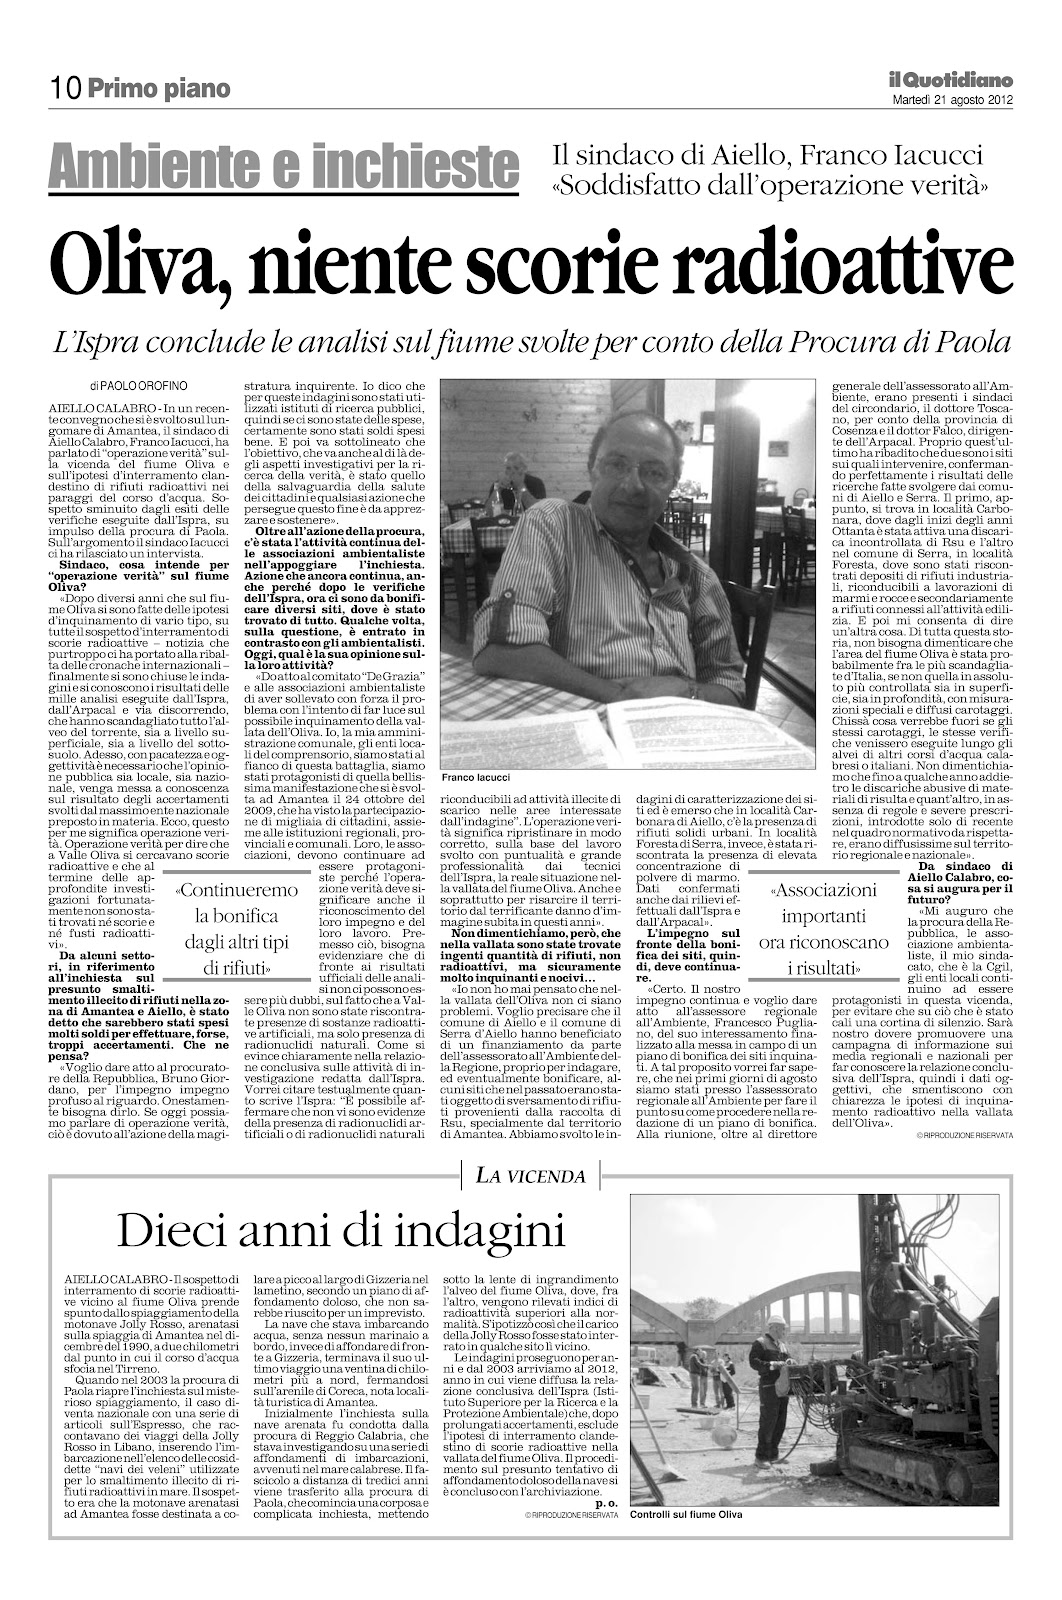 sul quotidiano